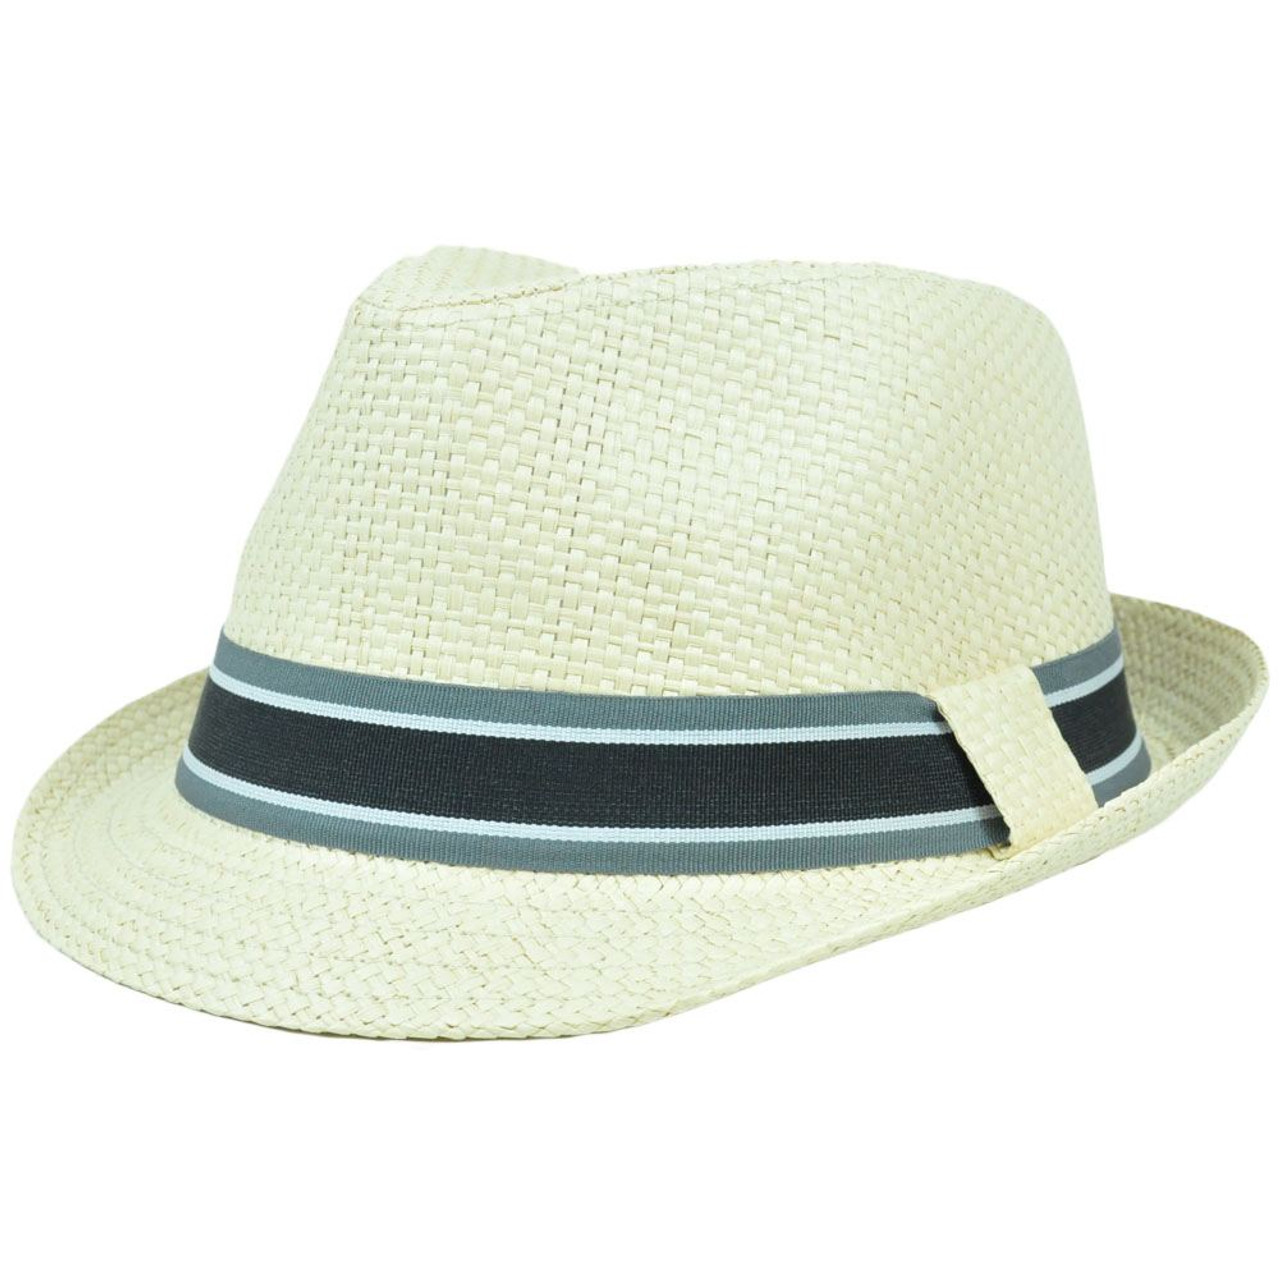 47e56f2a4dc7e1 FD-177 Trilby Woven Paper Fedora Striped Band Small Medium Gangster Hat  Stetson - Cap Store Online.com